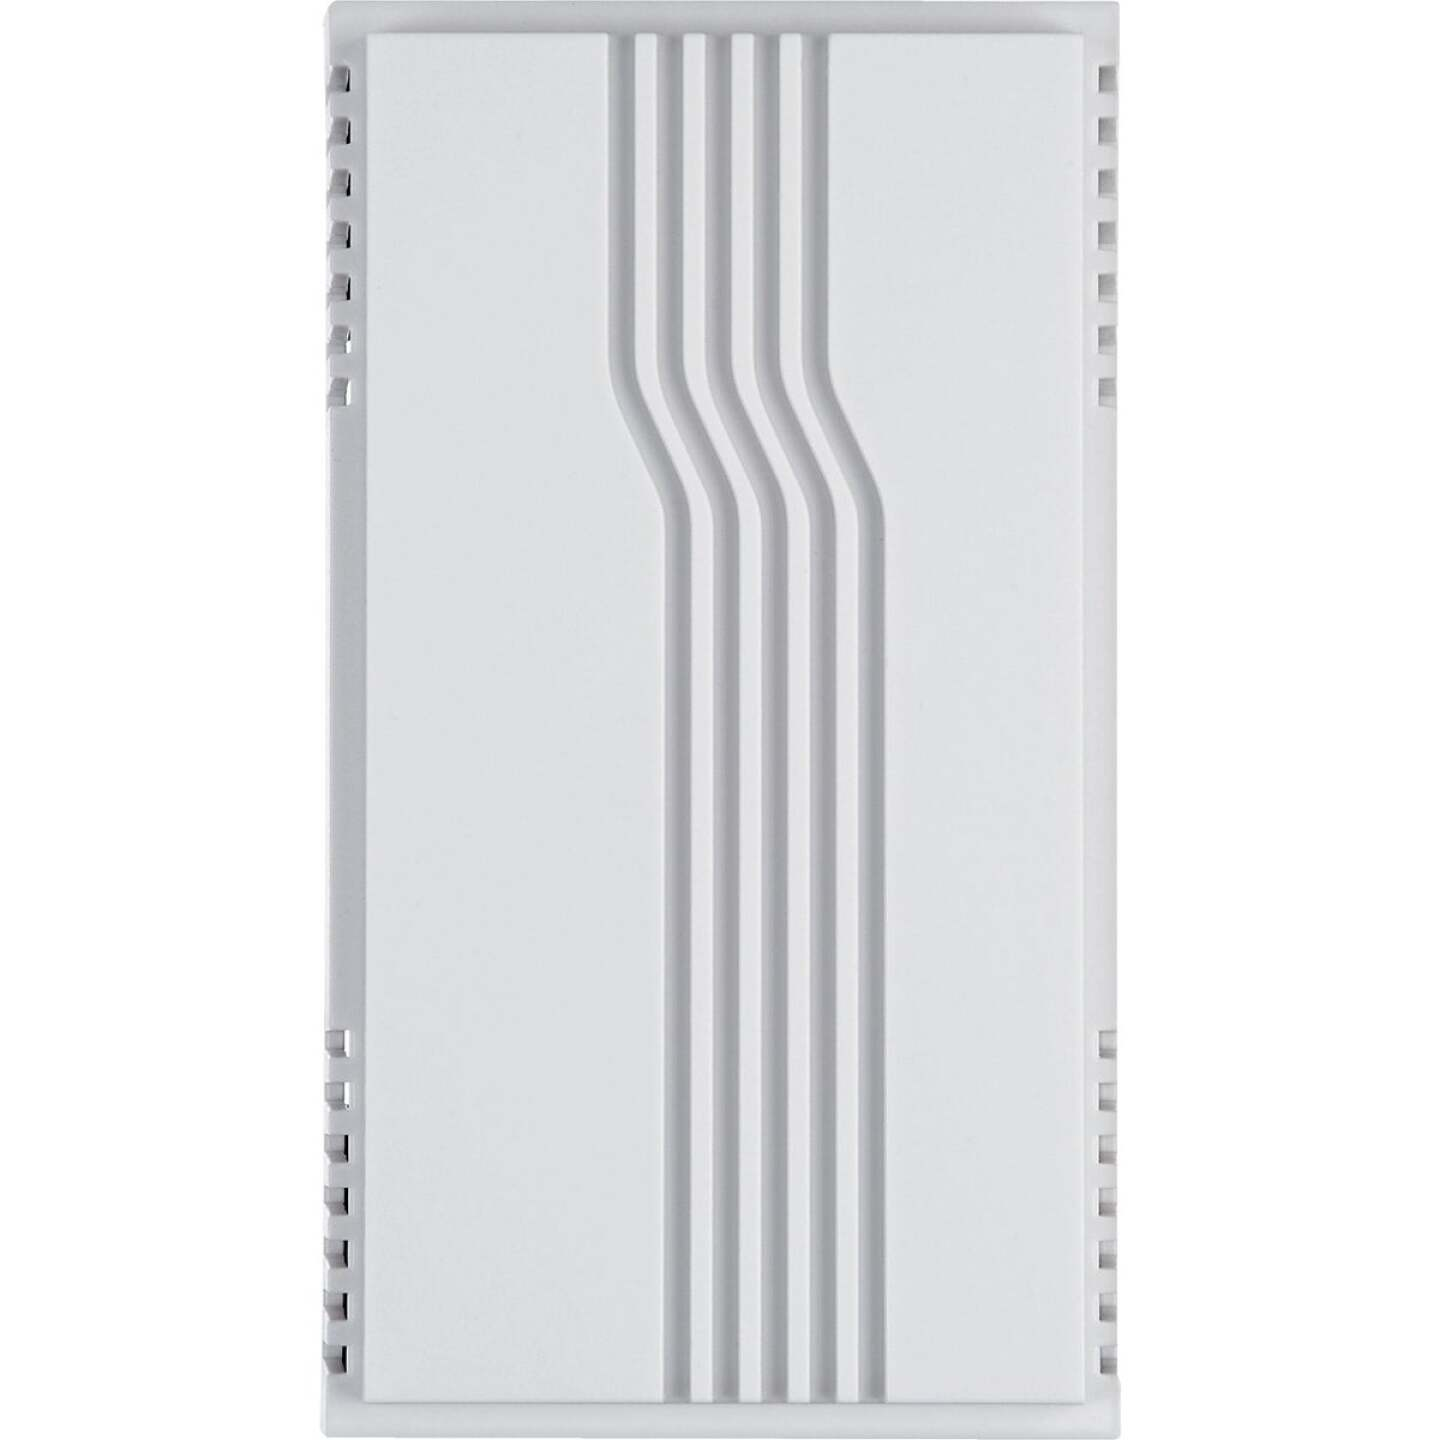 IQ America Off-White Plastic Wired Door Chime Image 1